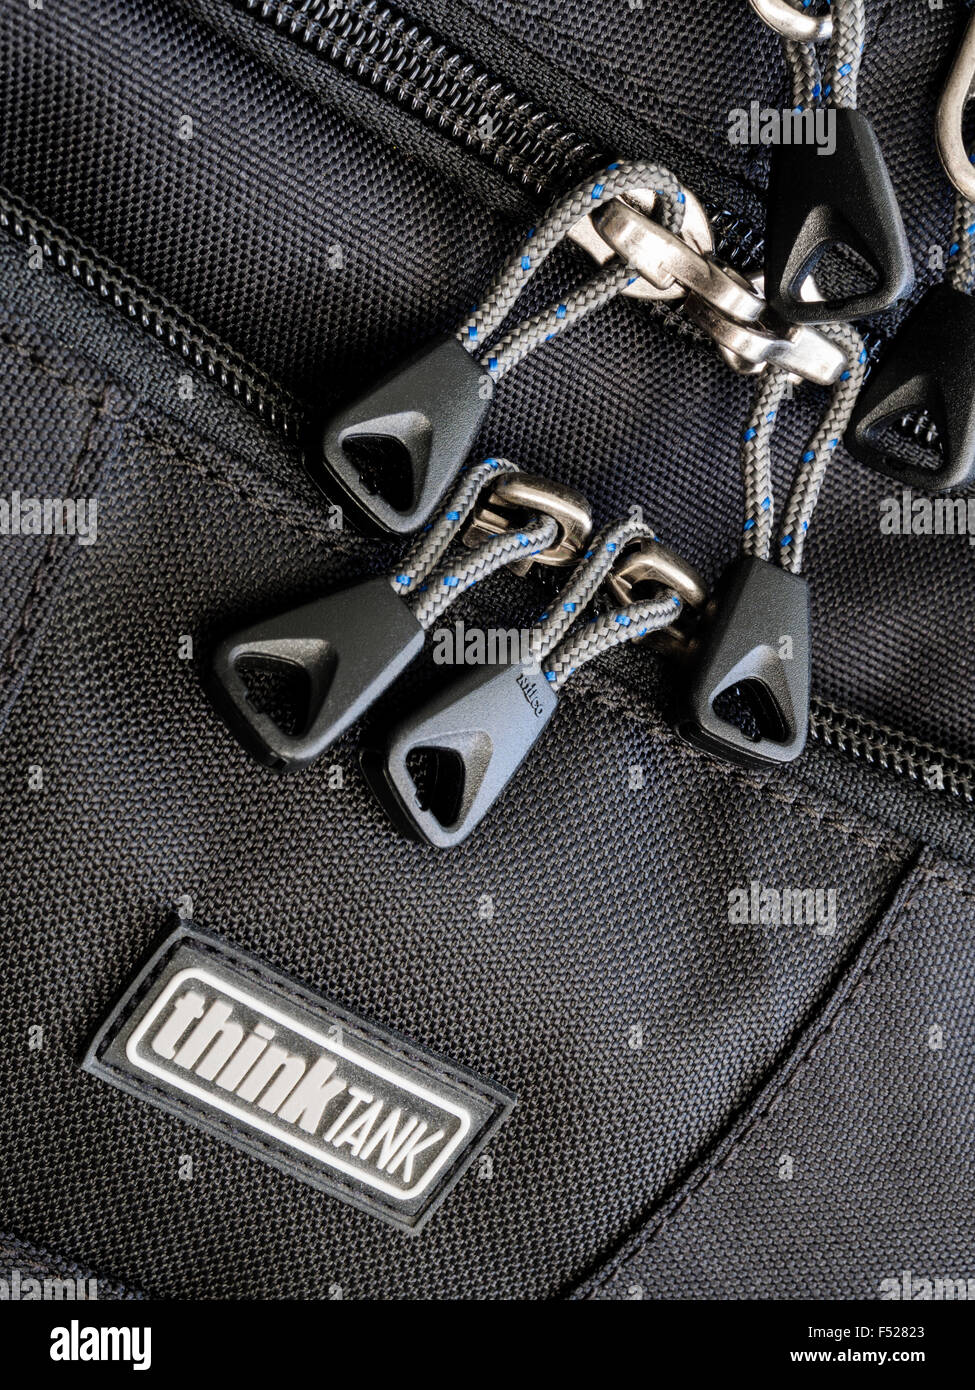 Think Tank Photo Airport Commuter Backpack - close-up of zipper and company logotype, studio shot - Stock Image